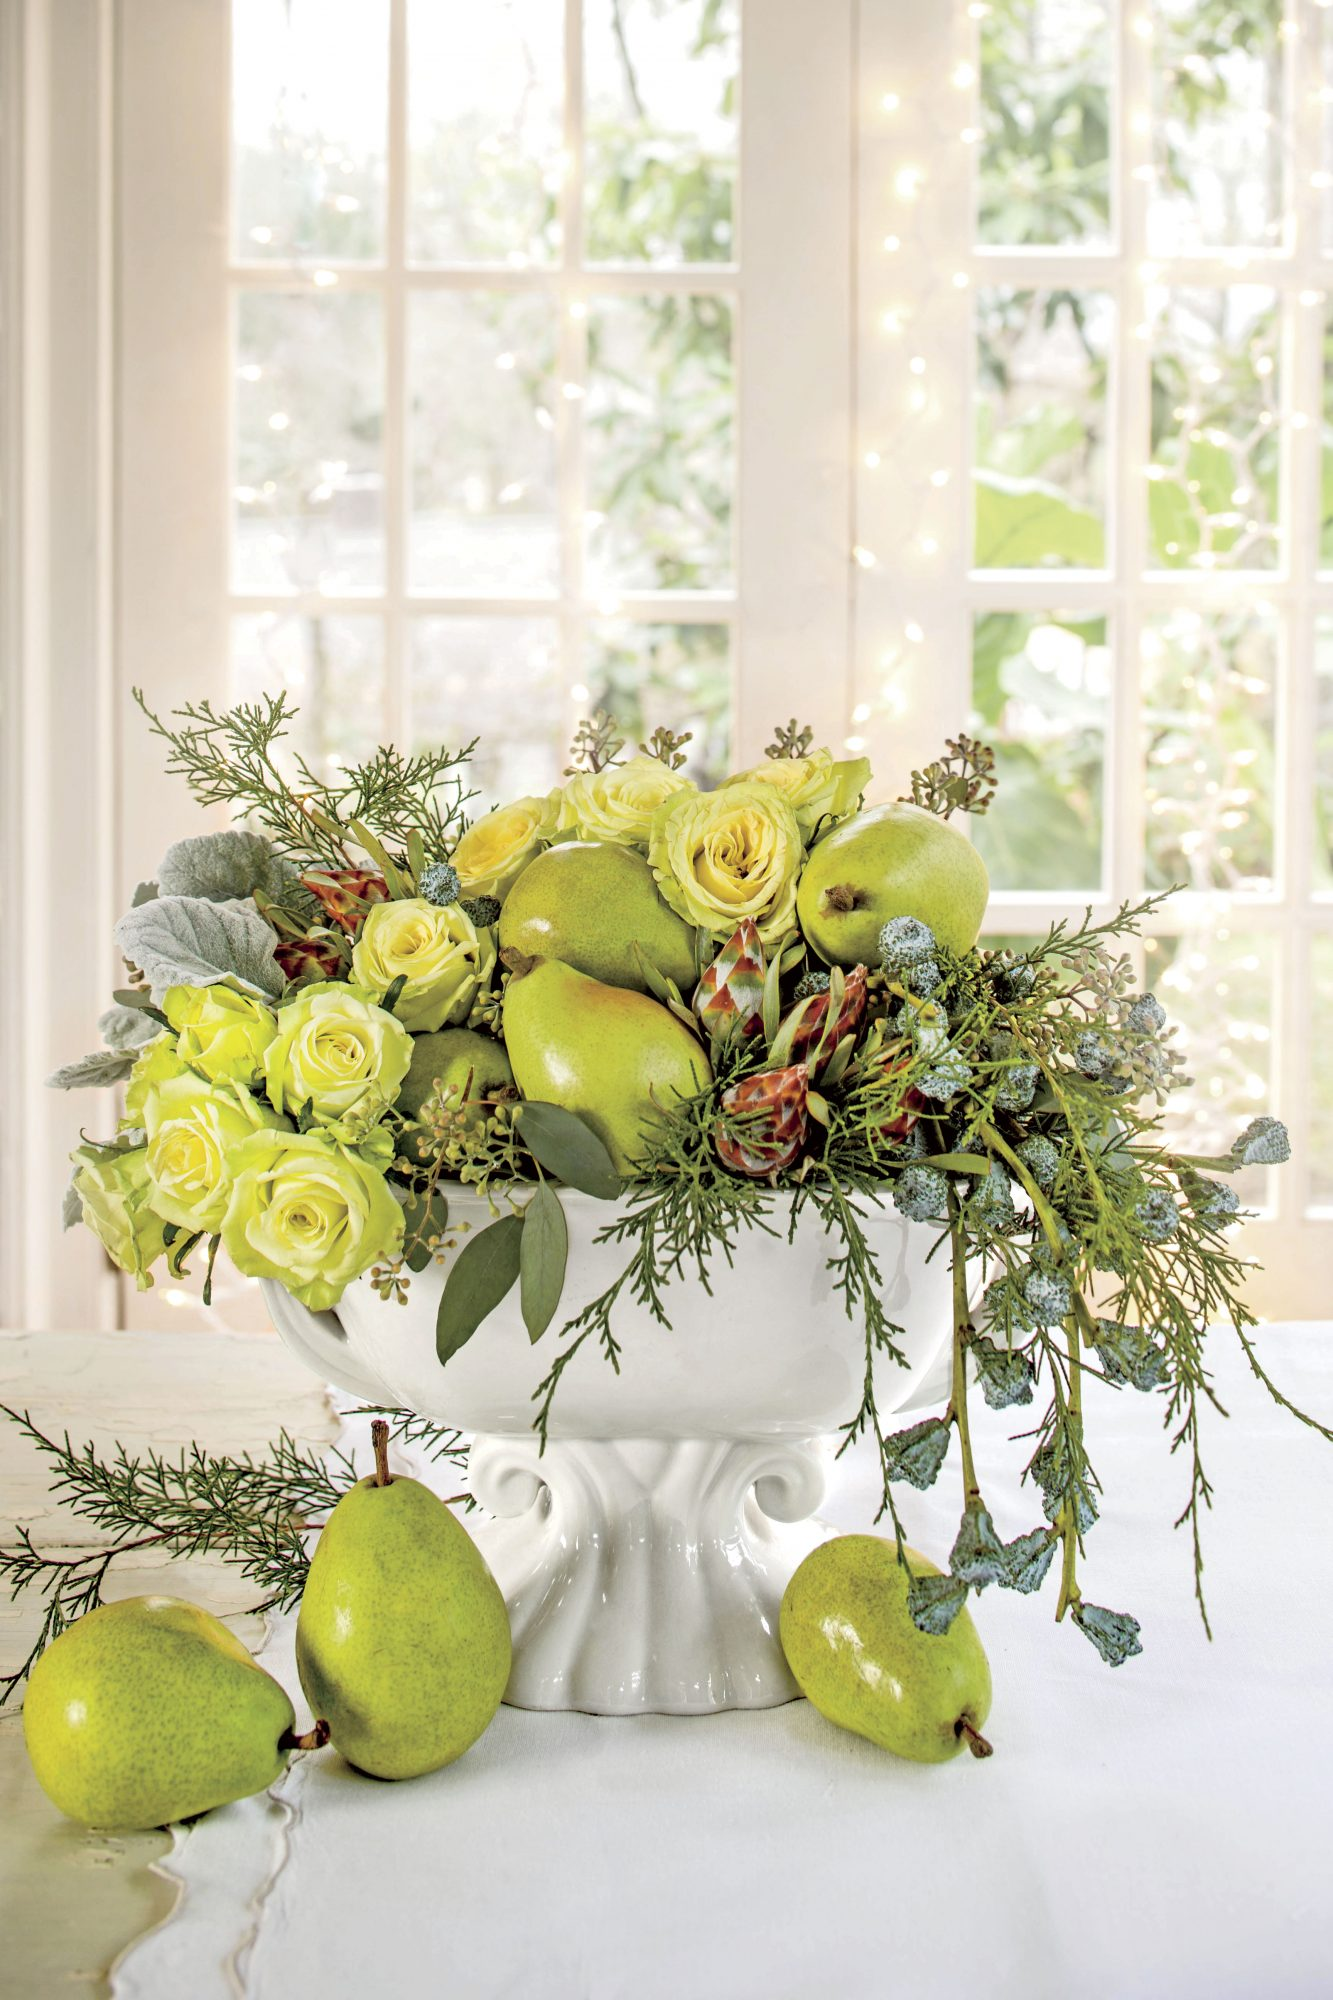 Green Pear and Roses Christmas Centerpiece